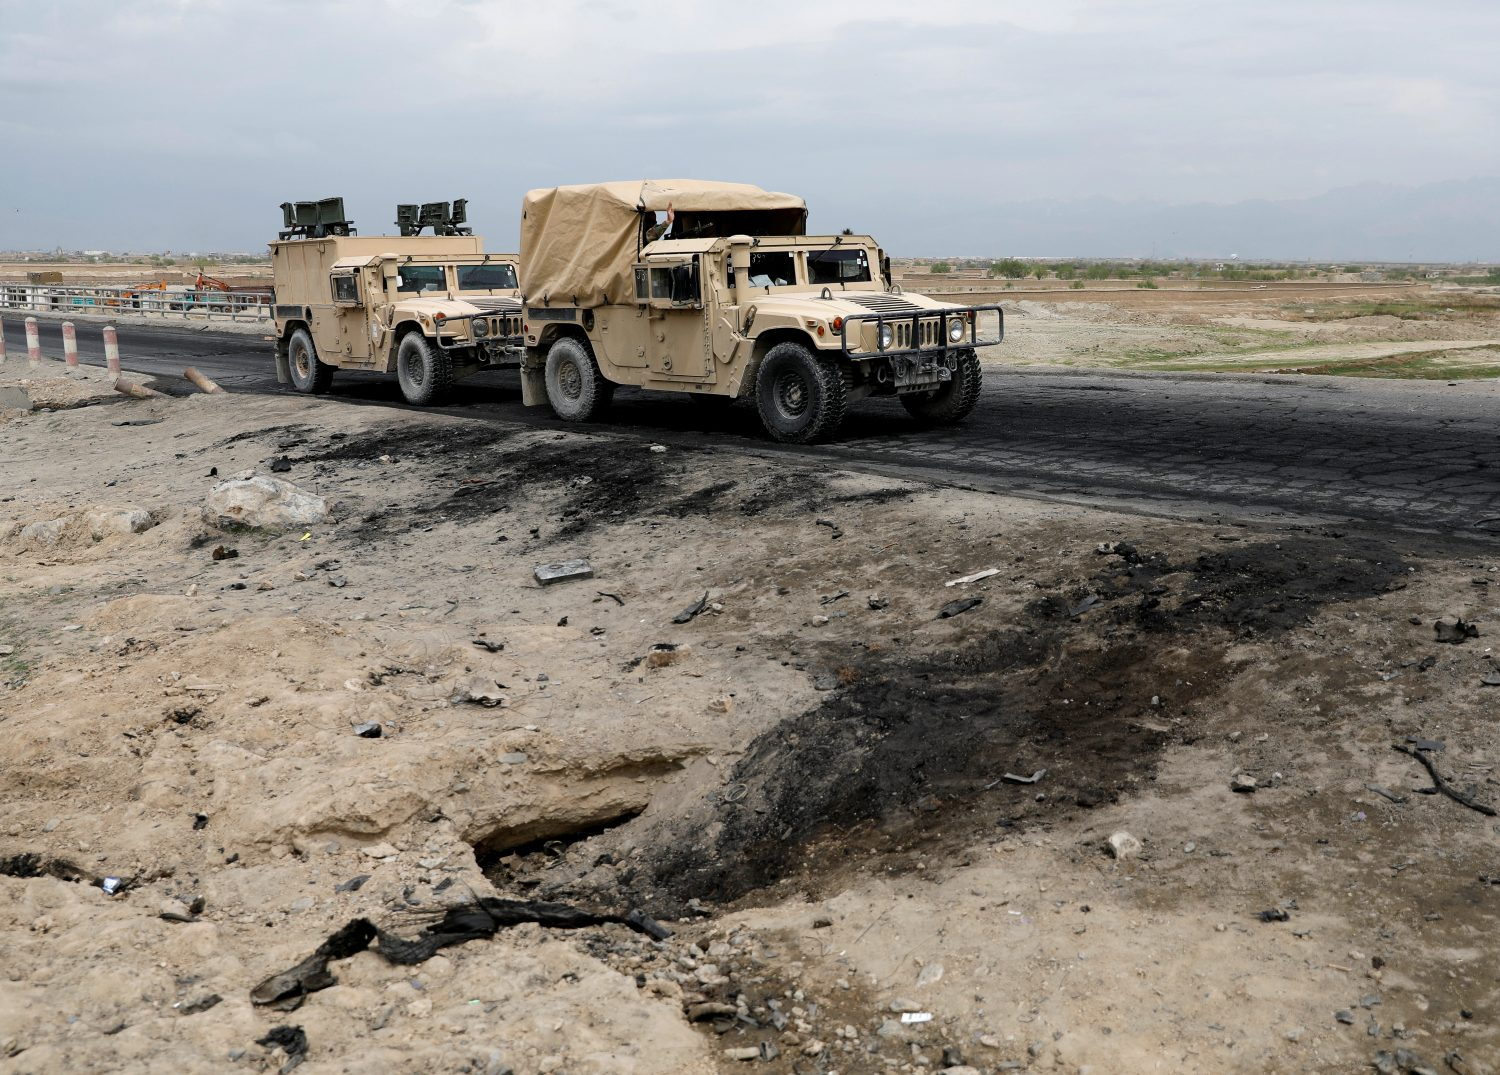 An Afghan military convoy drives past the site of a car bomb attack where U.S soldiers were killed near Bagram air base, Afghanistan April 9, 2019. REUTERS/Mohammad Ismail